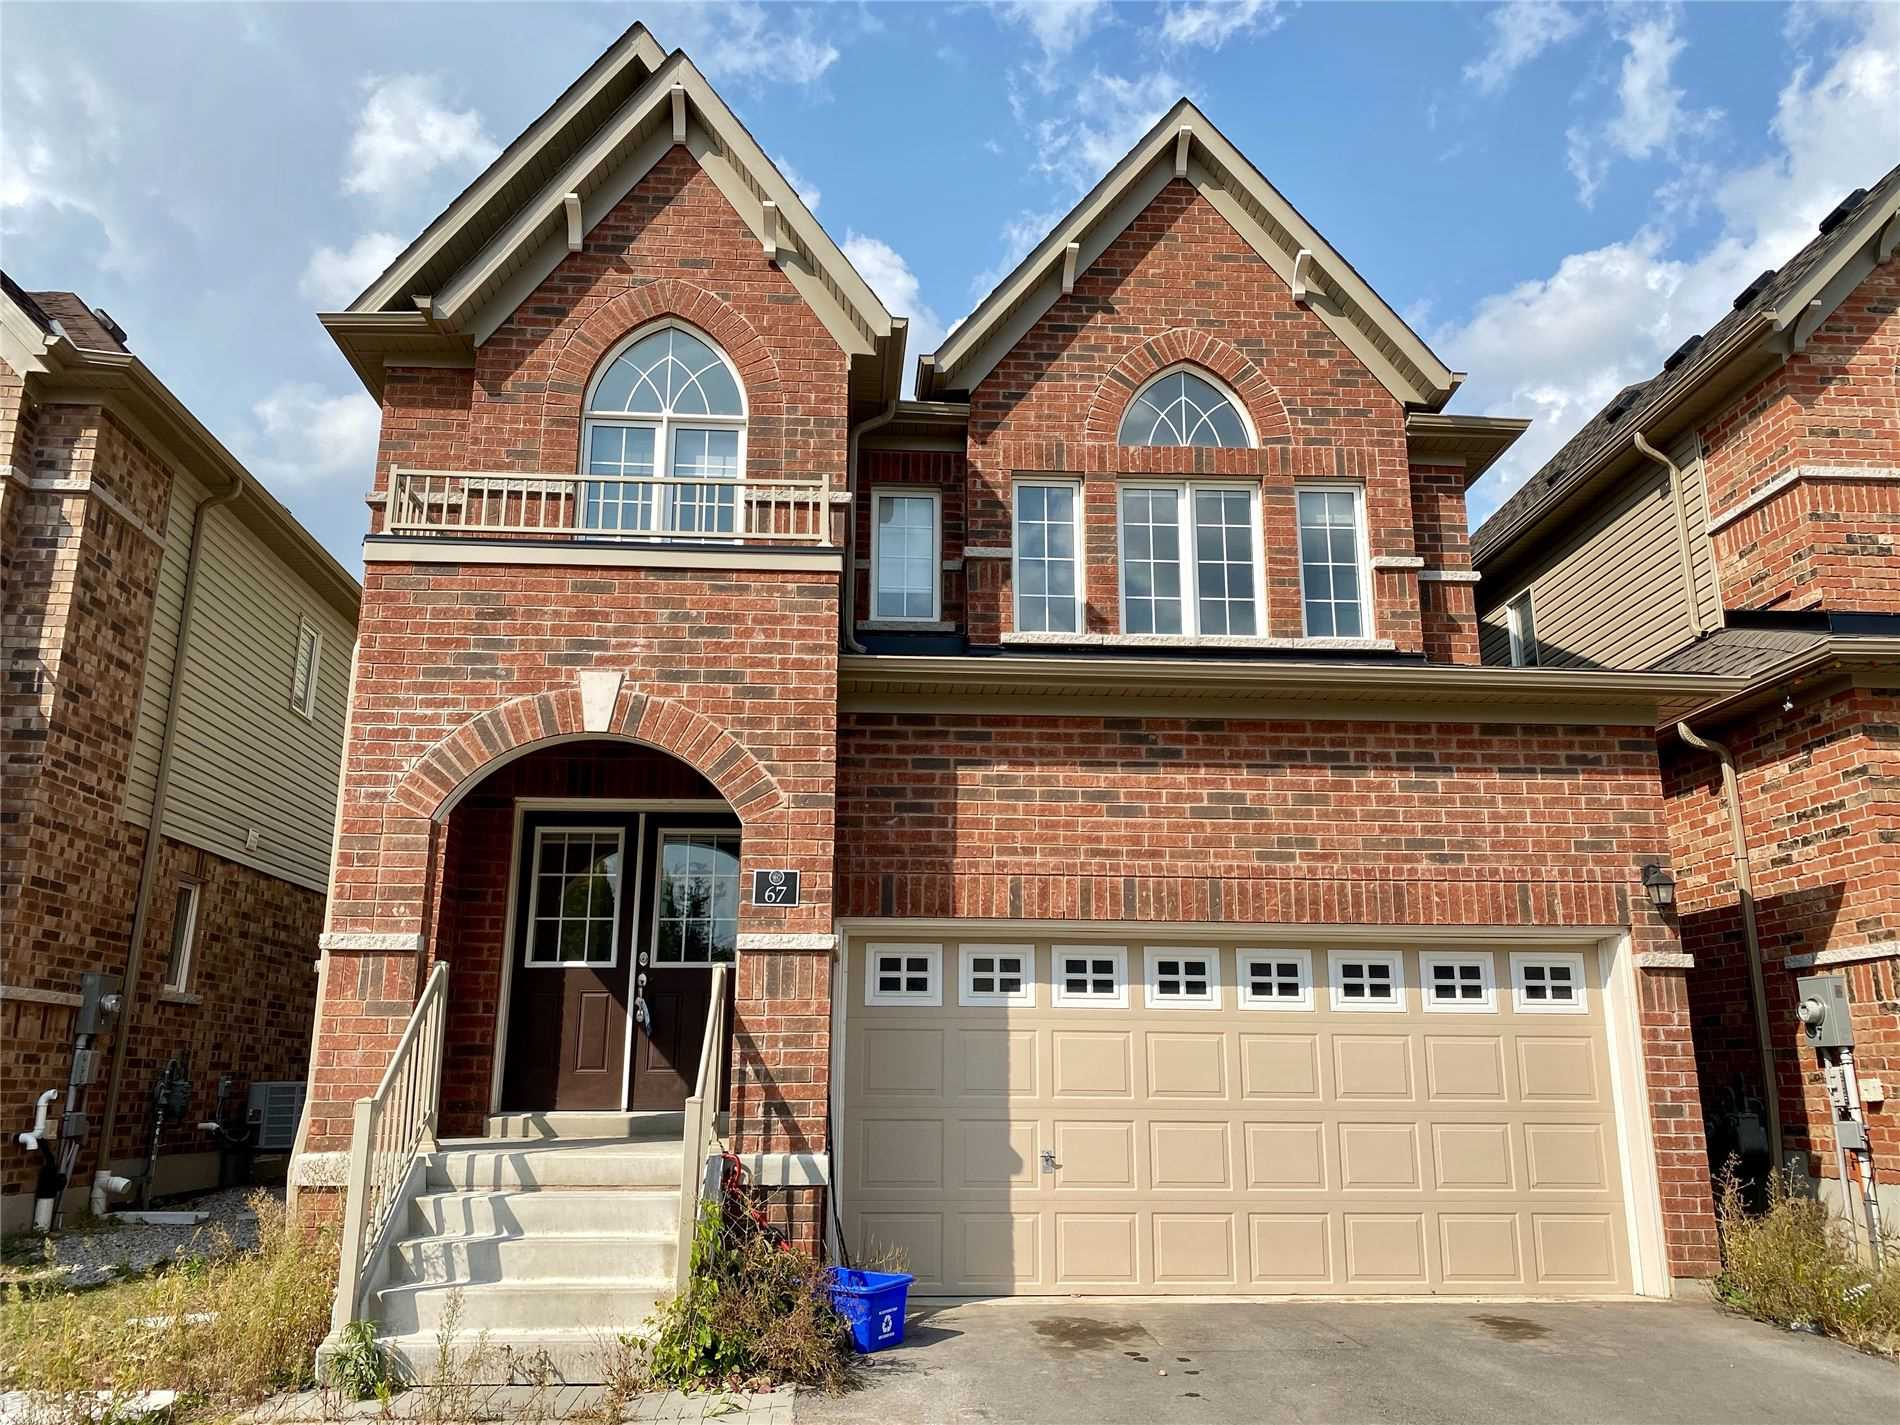 Gorgeous 2 Years Old Crystal Homes Build Detached House (Edenvale Model With Brick C Elevation Almost 2500 Sqft) With 9 Feet Ceiling, Oak Stairs, Double Car Garage, Double Door Entrance With 5 Bedrooms. Plus Family Room And Living Room), 3 Baths. 2 Min From The Hwy 401, Minutes From Conestoga College, Don Valley Golf Course, Close To Pinnacle Hill Natural Area & Short Drive From Schools. Laundry Upper Level.